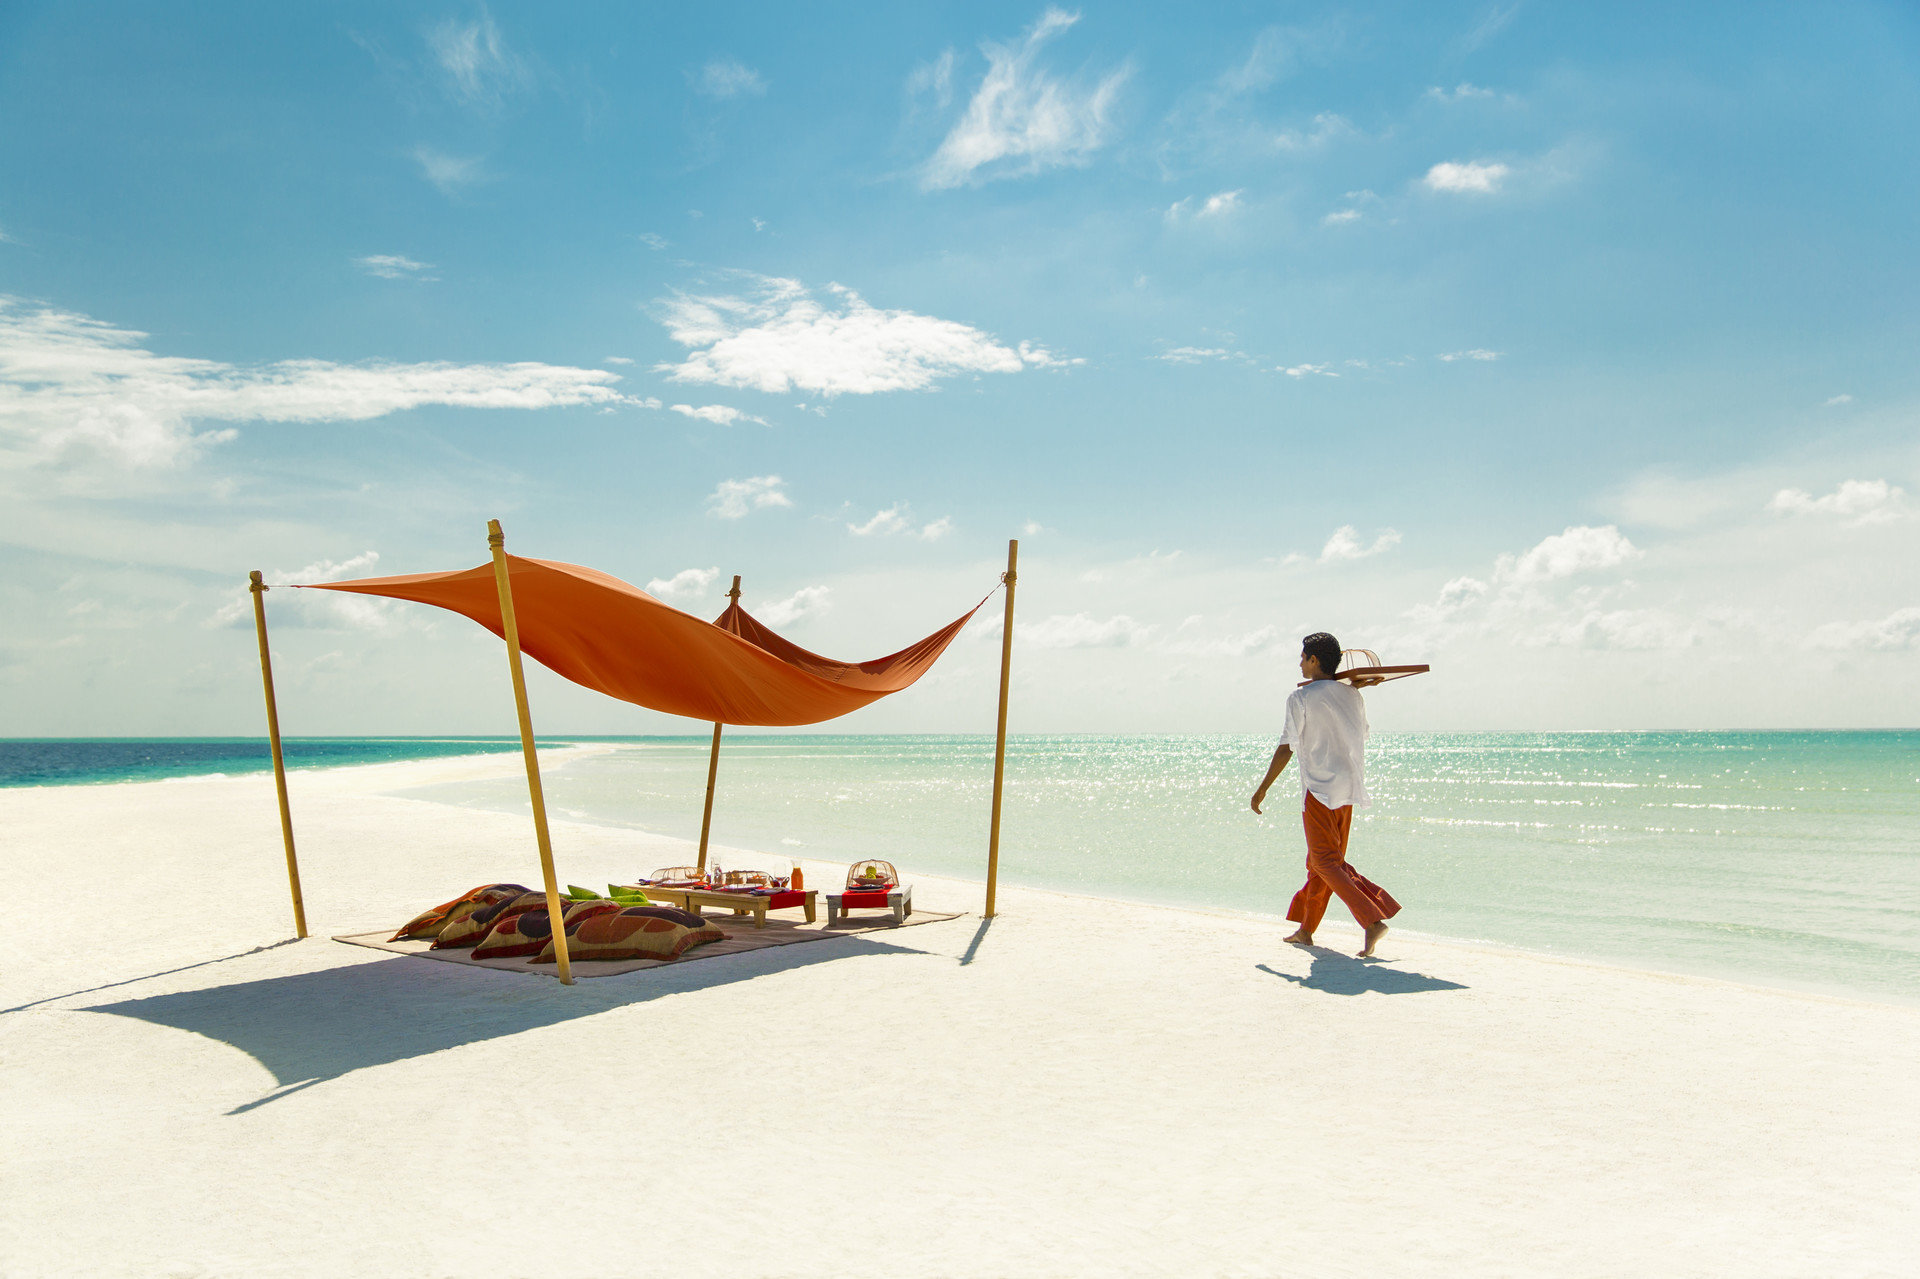 Beauty Hotels News Trip Ideas sky outdoor water Beach Sea vacation shore Ocean watercraft sand surfboard surfing equipment and supplies Boat wind wave sailing vessel day